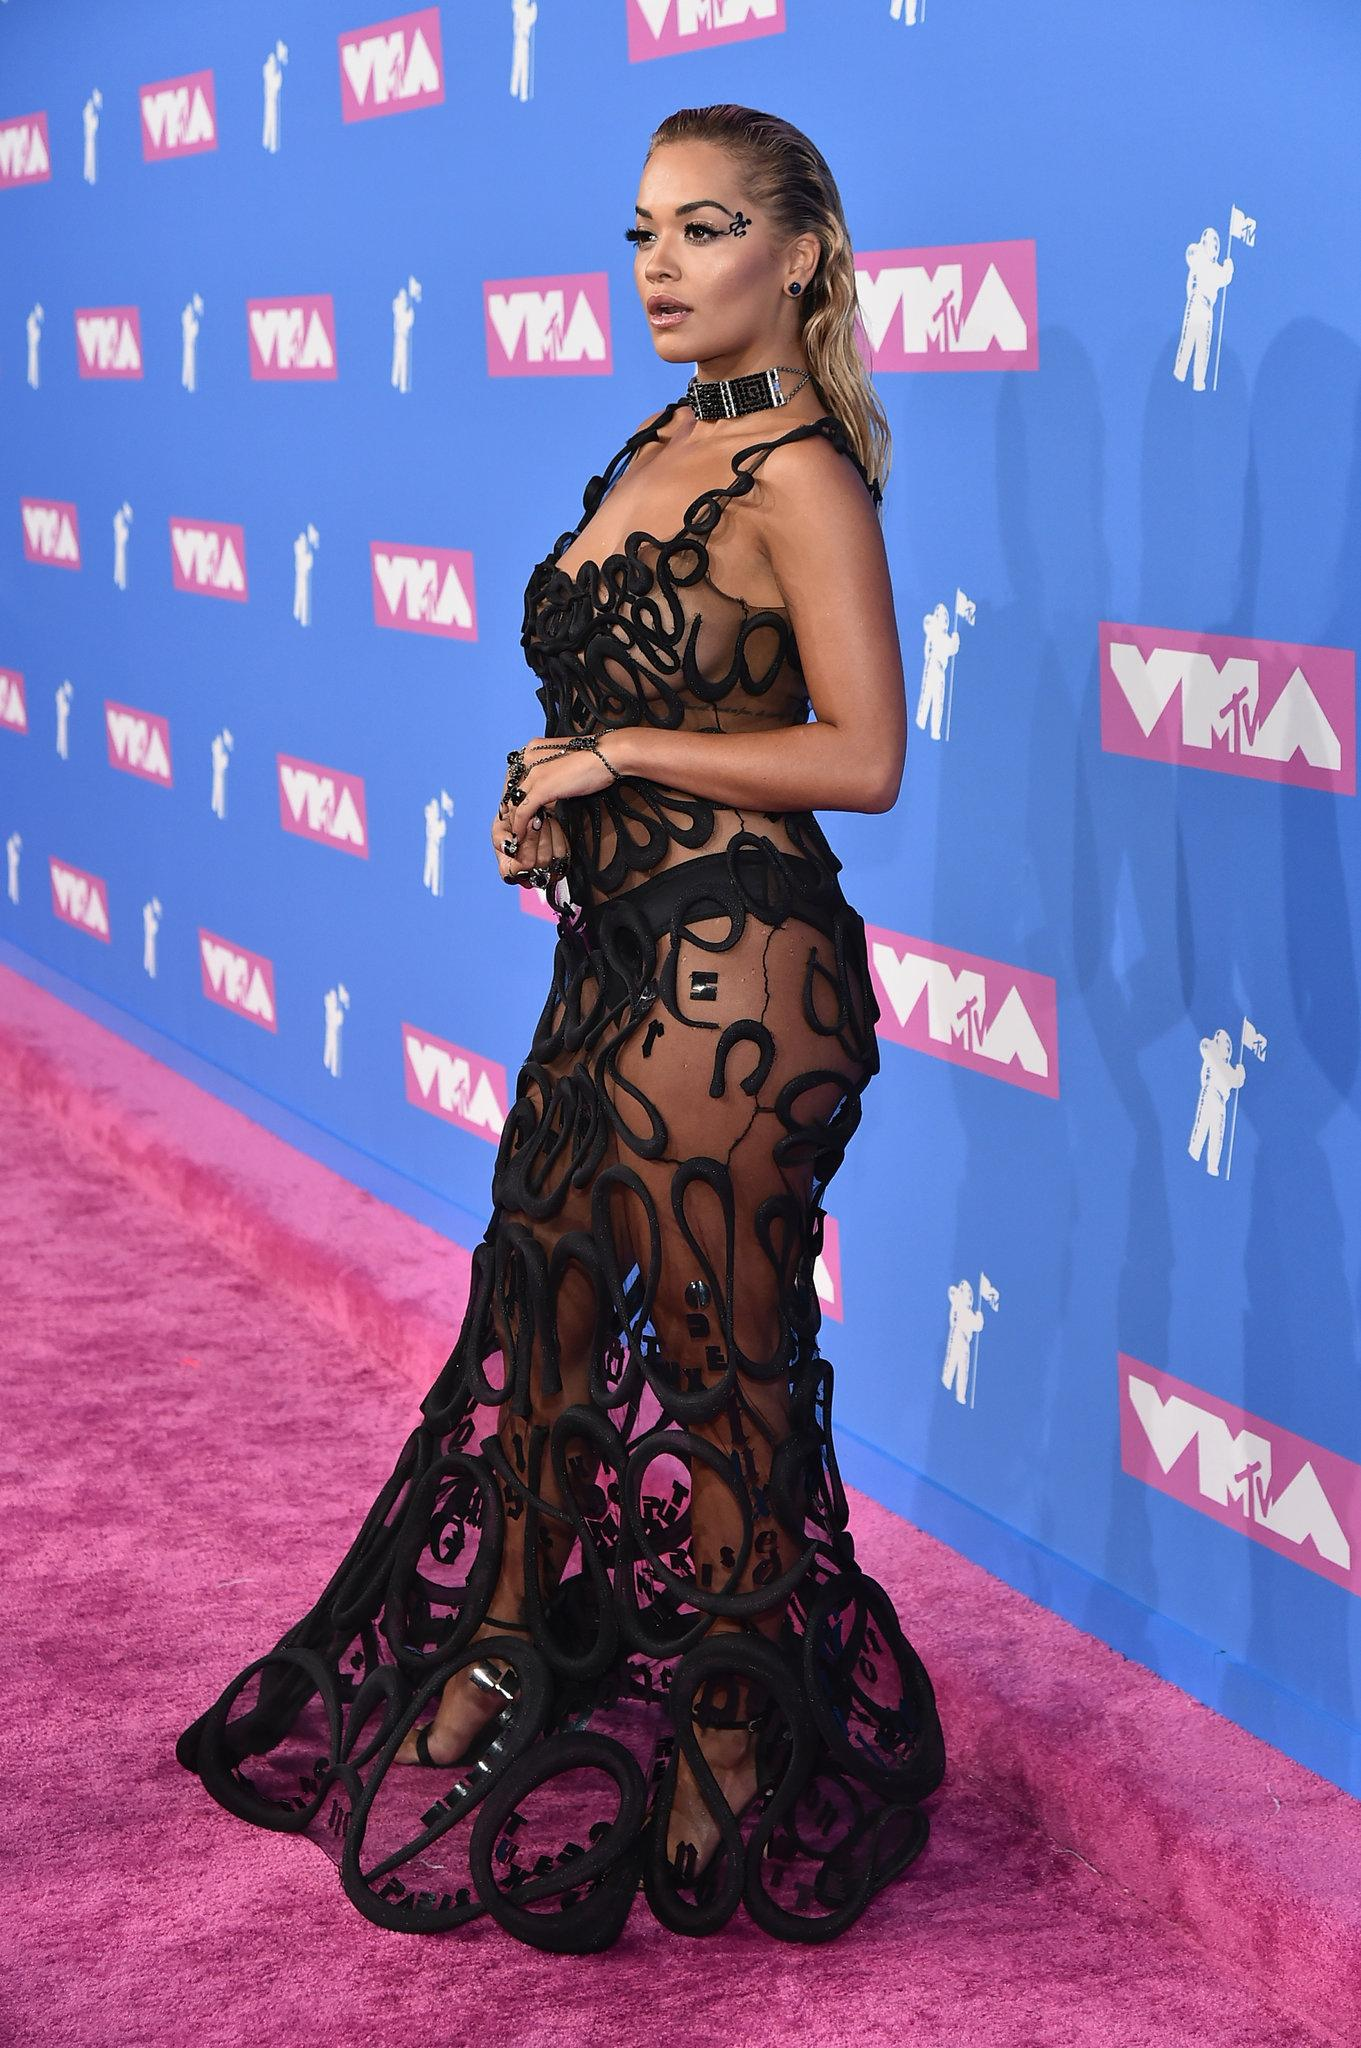 Mtv Video Music Awards 2018 Rita Ora Cardi B And Others Wowed On